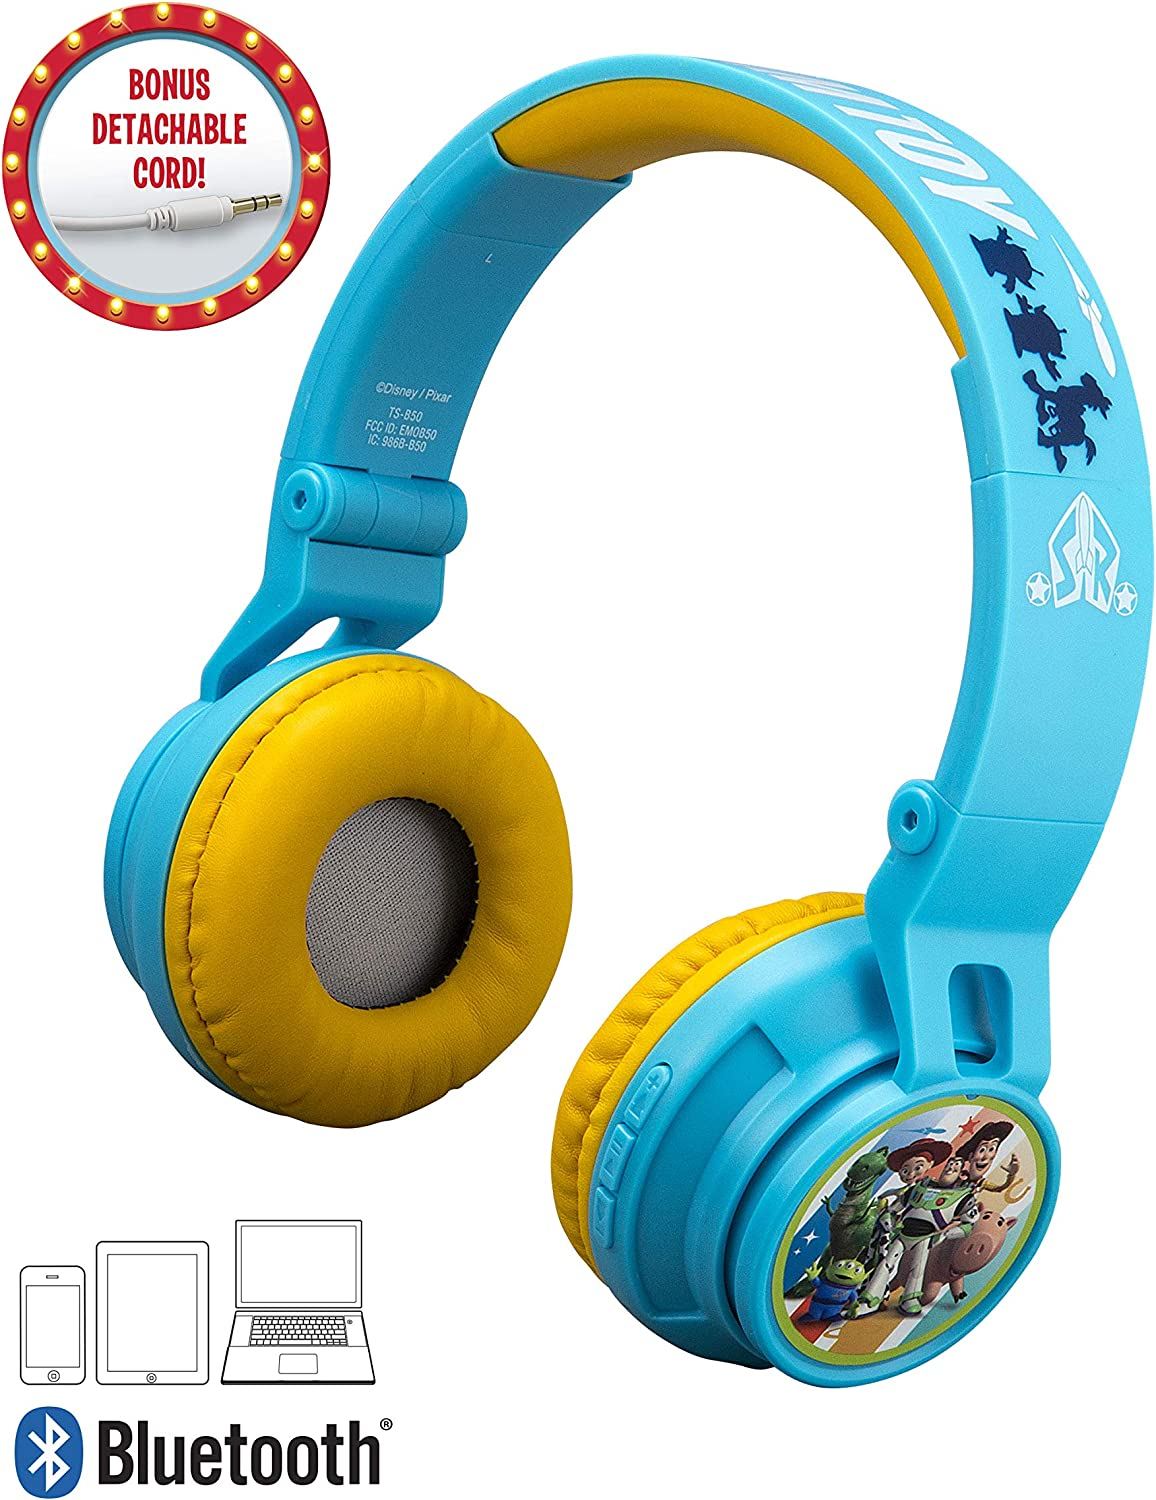 eKids B50 Toy Story 4 Kids Bluetooth Headphones for Kids Wireless Rechargeable Foldable Bluetooth Headphones with Microphone Kid Friendly Sound & Bonus Detachable Cord